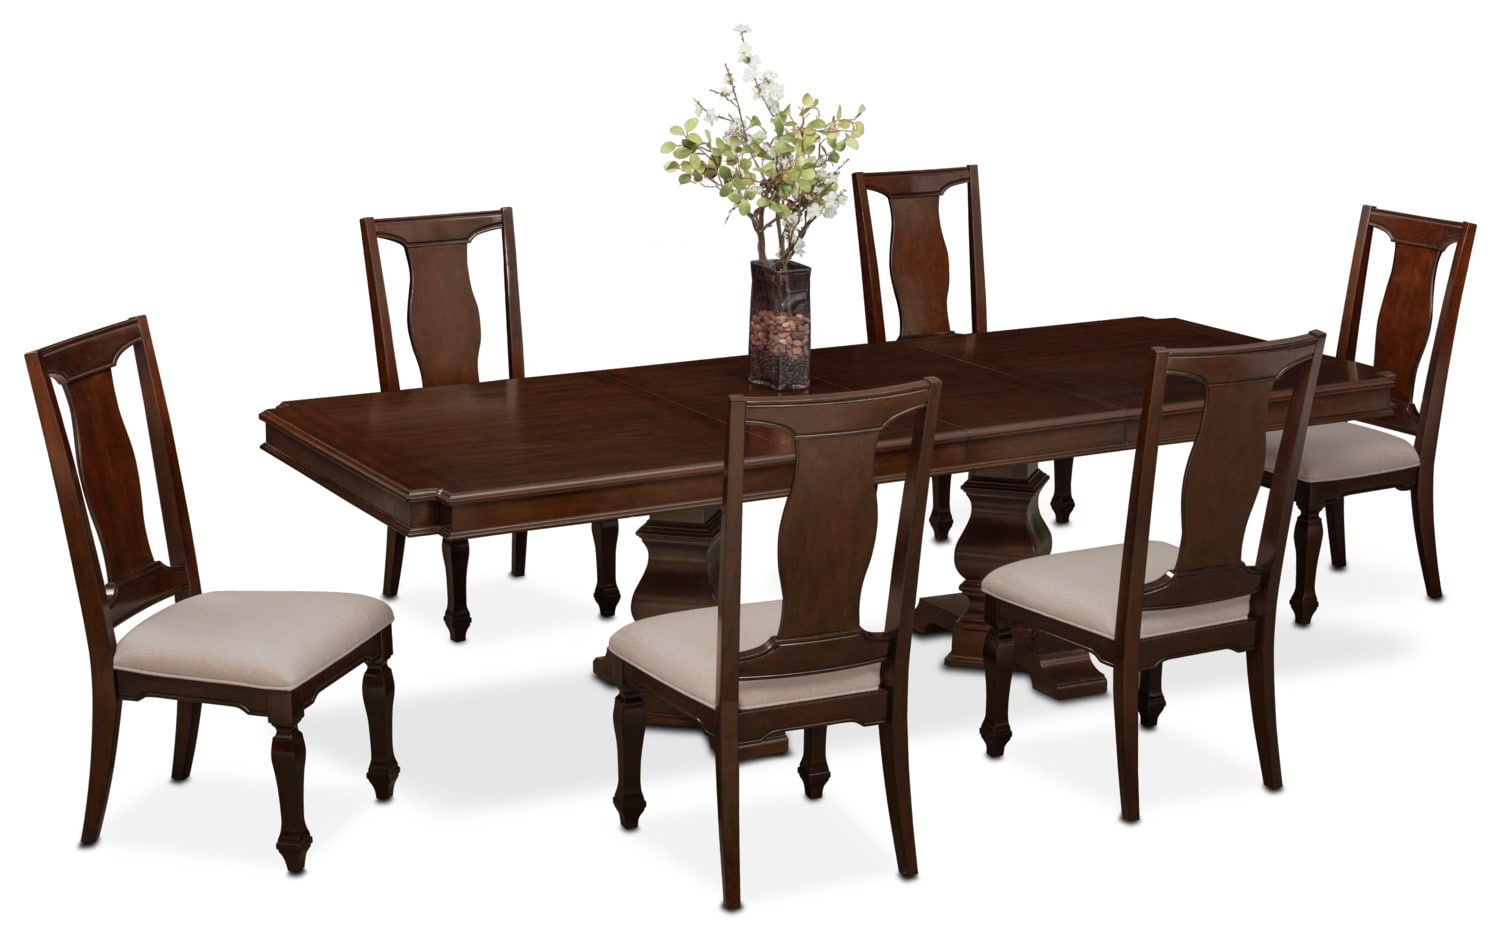 6 Dining Room Chairs Vienna Dining Table And 6 Side Chairs Merlot Value